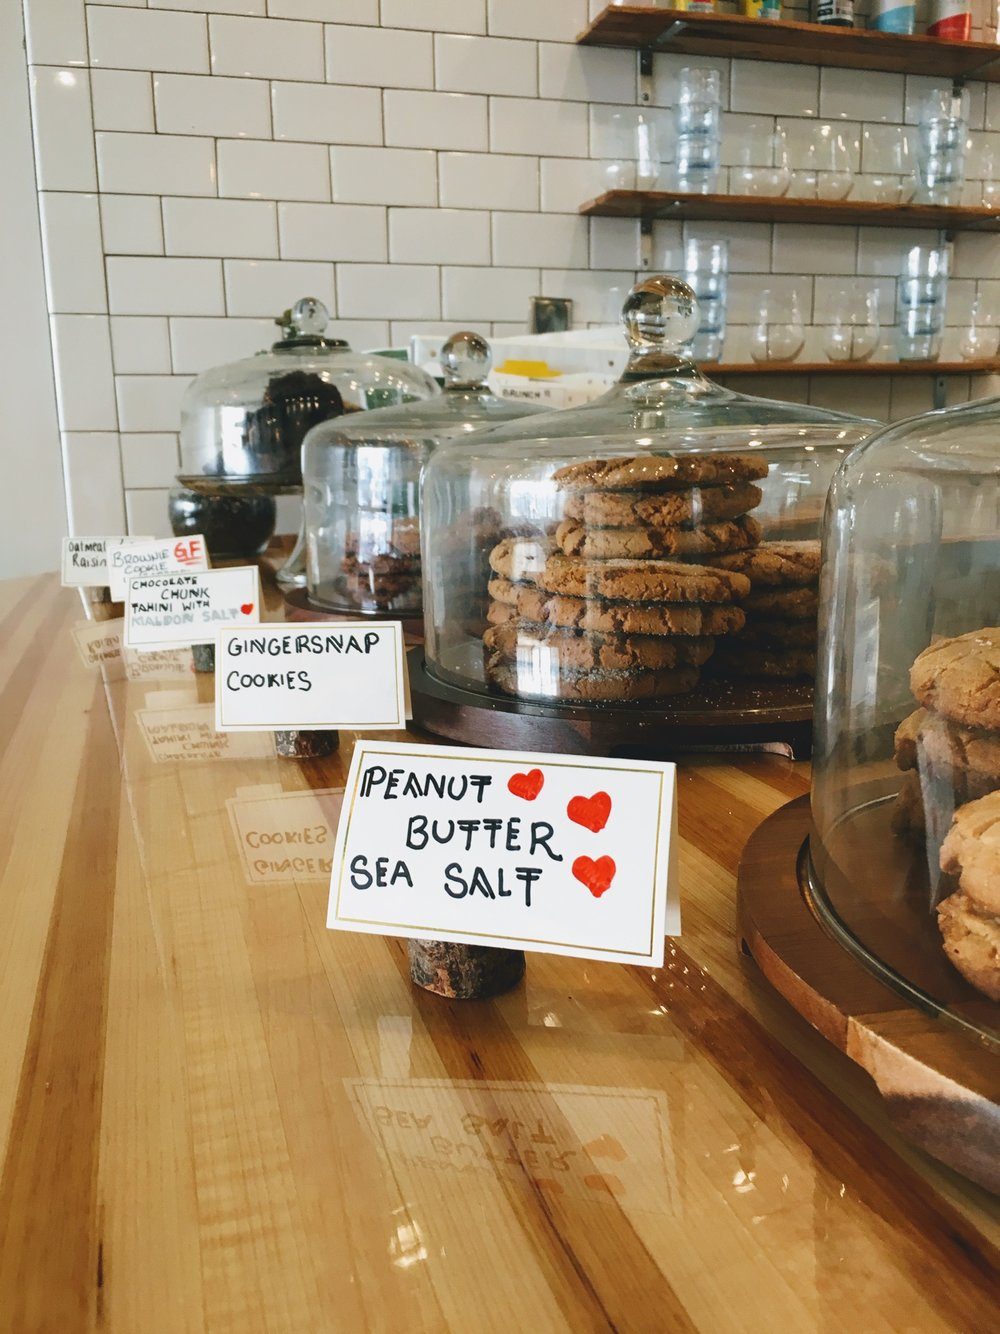 We have lot's of snacks at Seed! - Including plenty of Gluten-Friendly options.